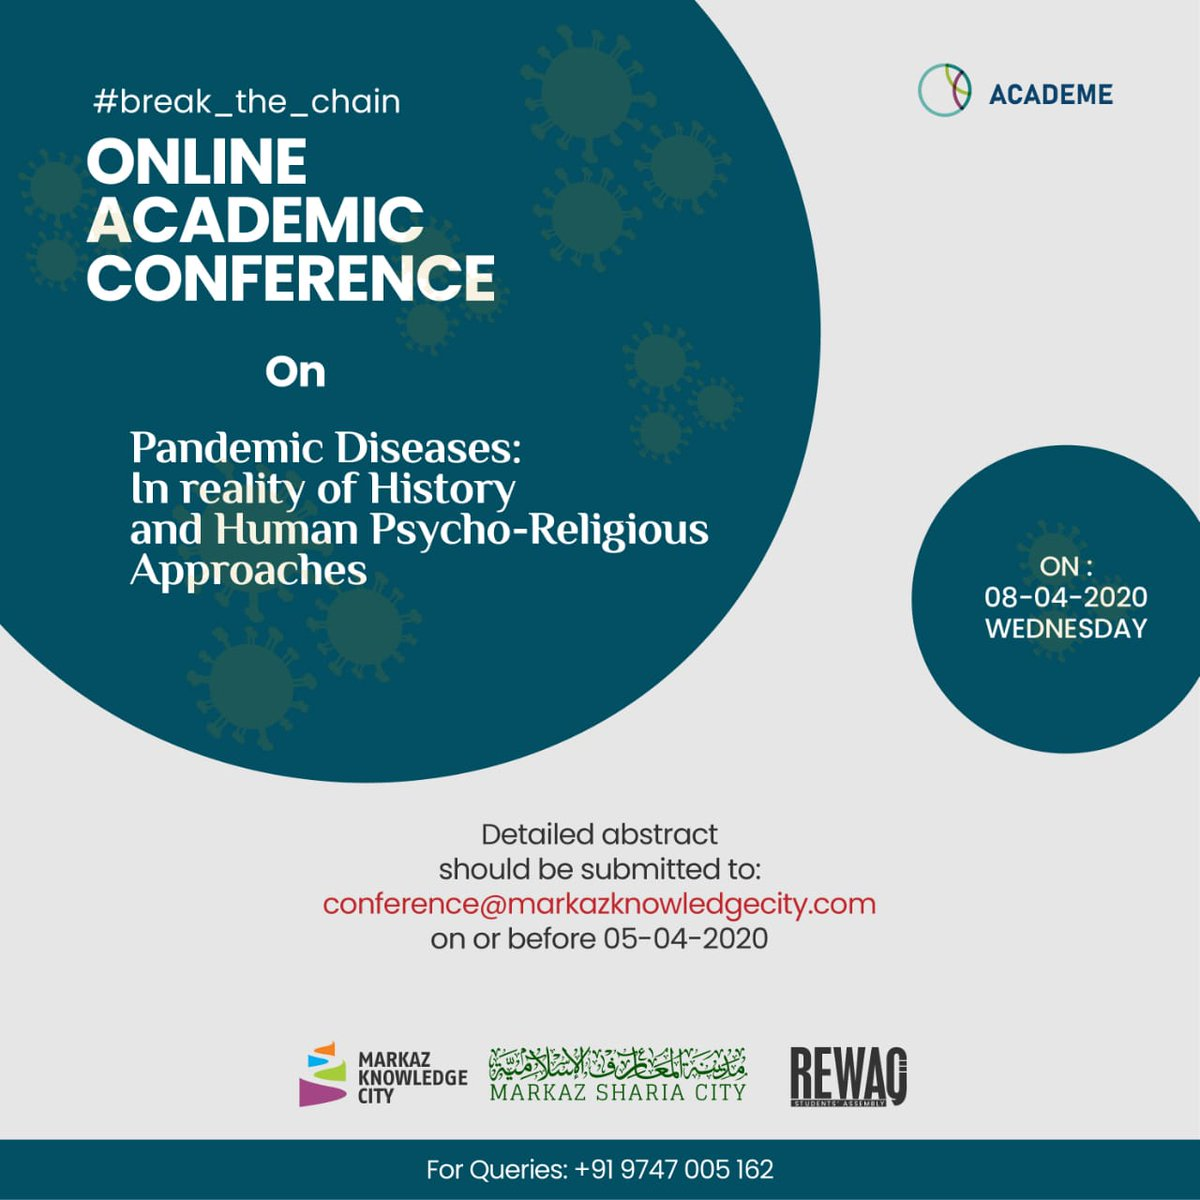 #break_the_chain Online Academic Conference On Pandemic Diseases: In reality of History and Human Psycho-Religious Approaches On 08-04-2020  conference@markazknowledgecity.com Contact: 9747005162  #OnlineAcademicConference #Online #PandemicDiseases #CoVID19 #StayHome #StaySafe https://t.co/3JU3gQ9QJD